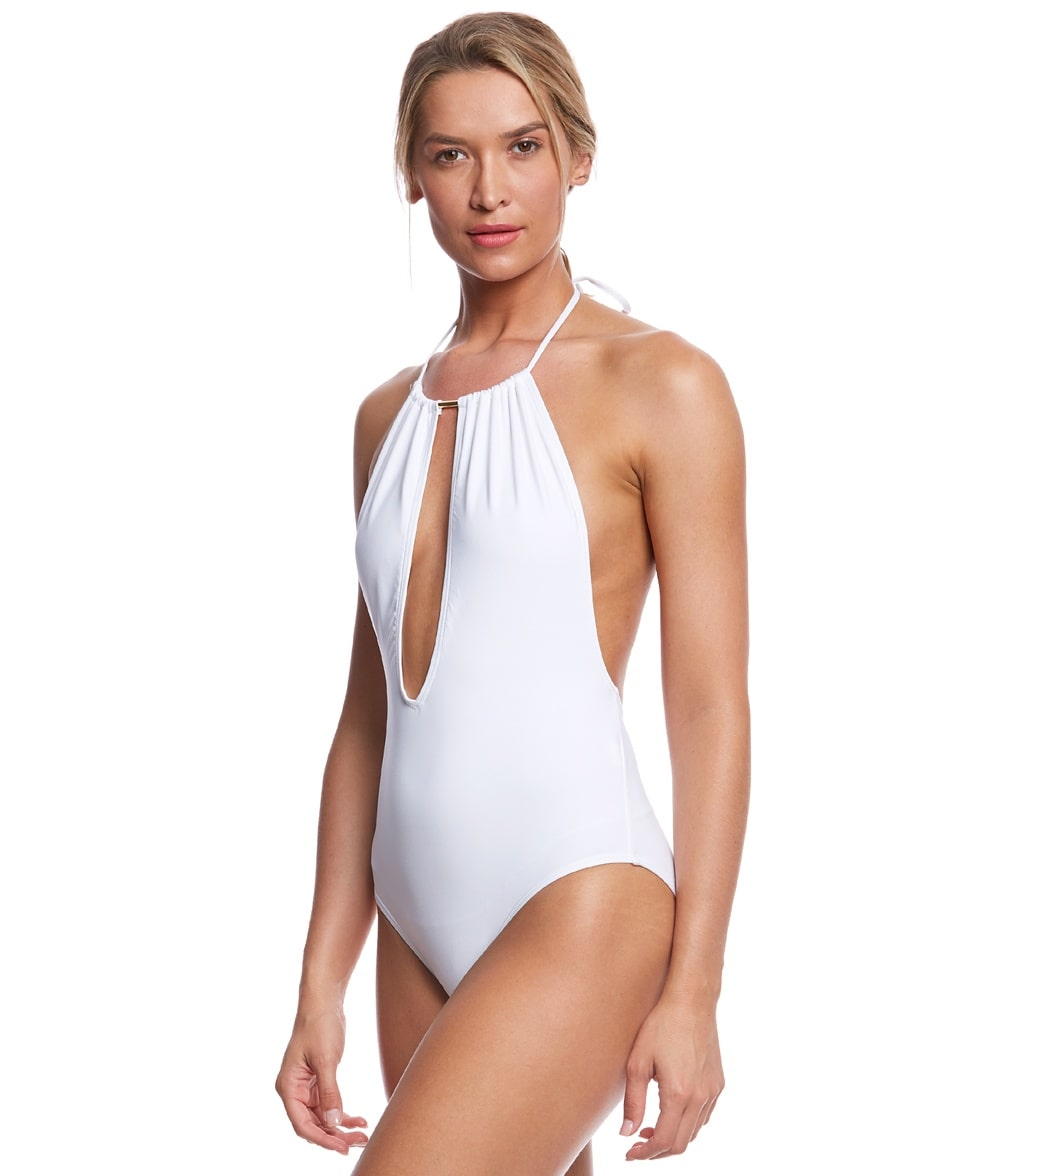 128ced7a62c Vince Camuto Hardwire High Neck Plunge One Piece Swimsuit at SwimOutlet.com  - Free Shipping